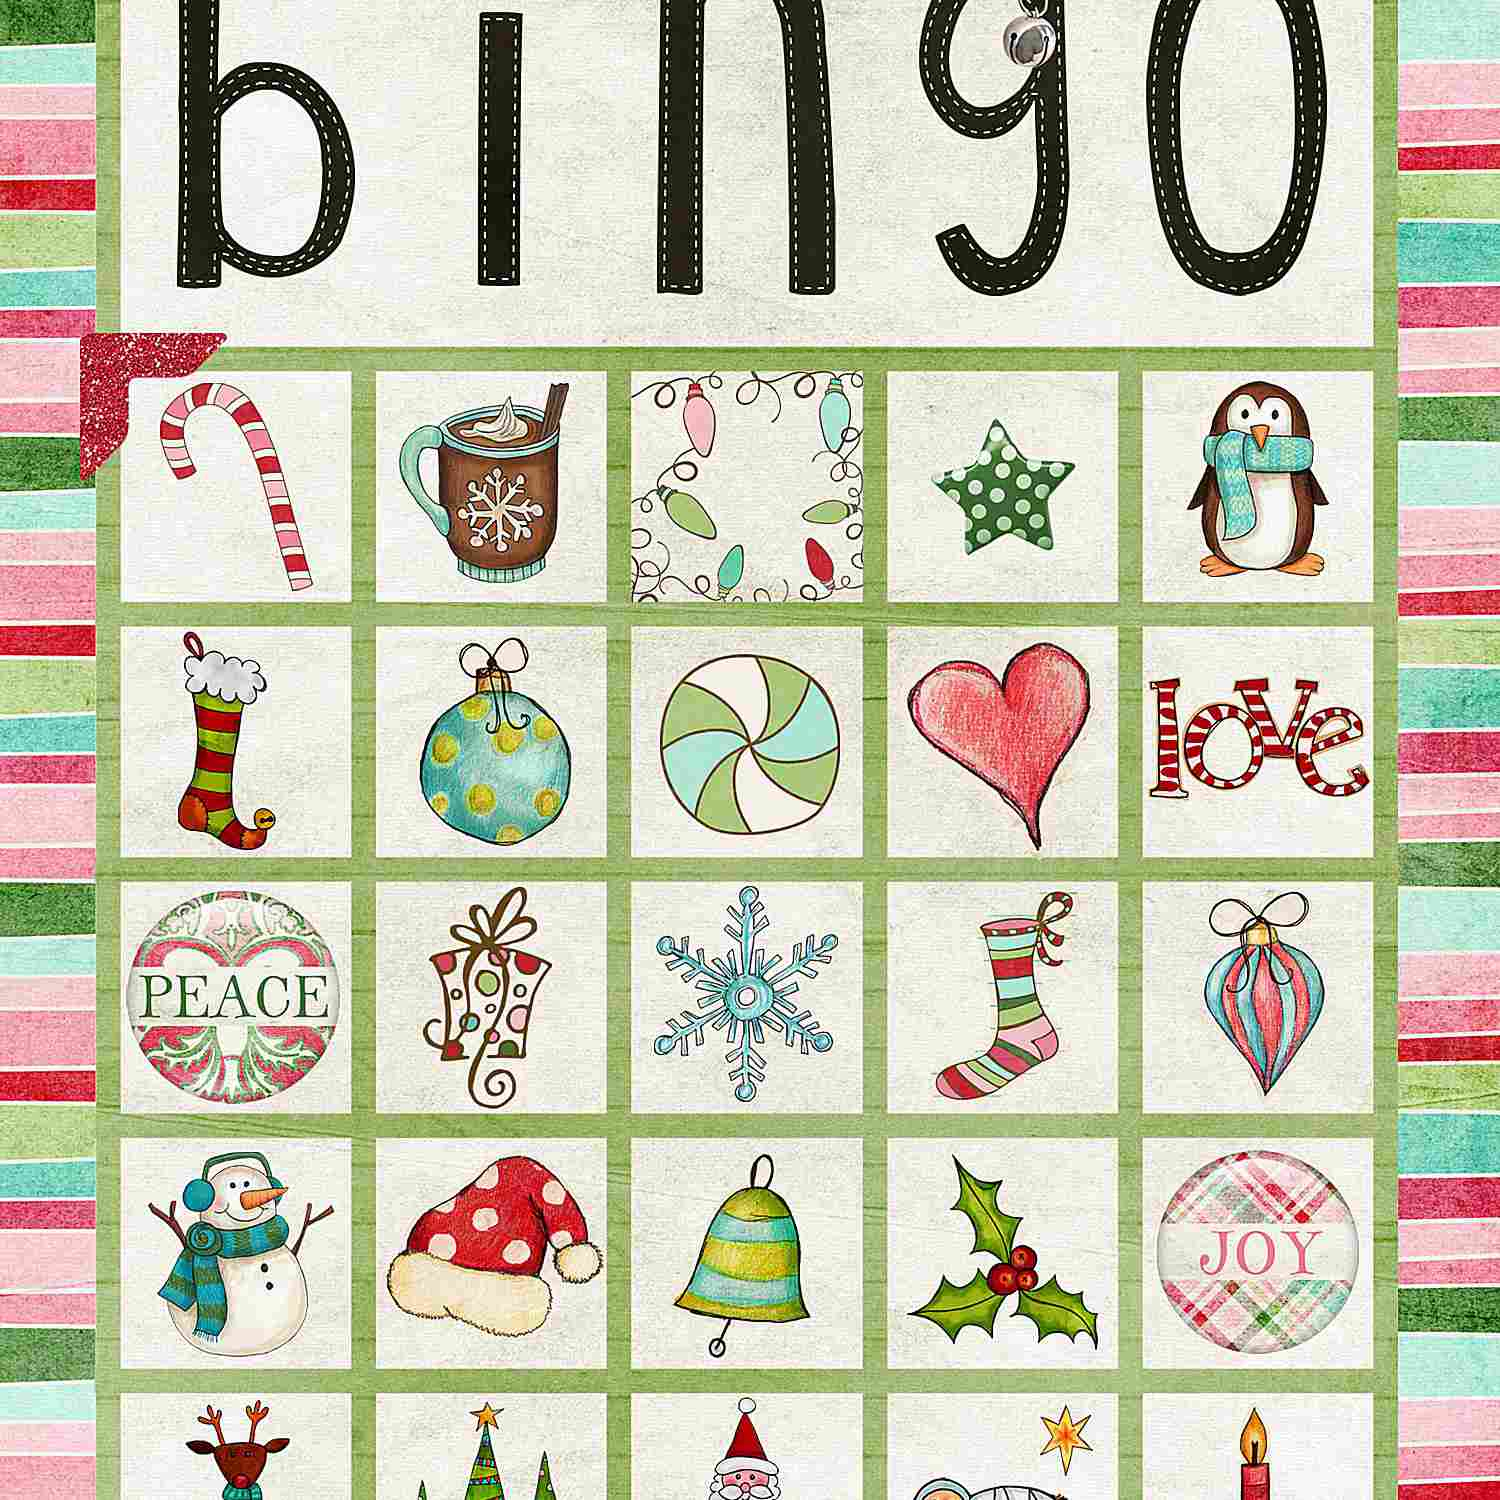 11 Free, Printable Christmas Bingo Games For The Family - Christmas Bingo Game Printable Free